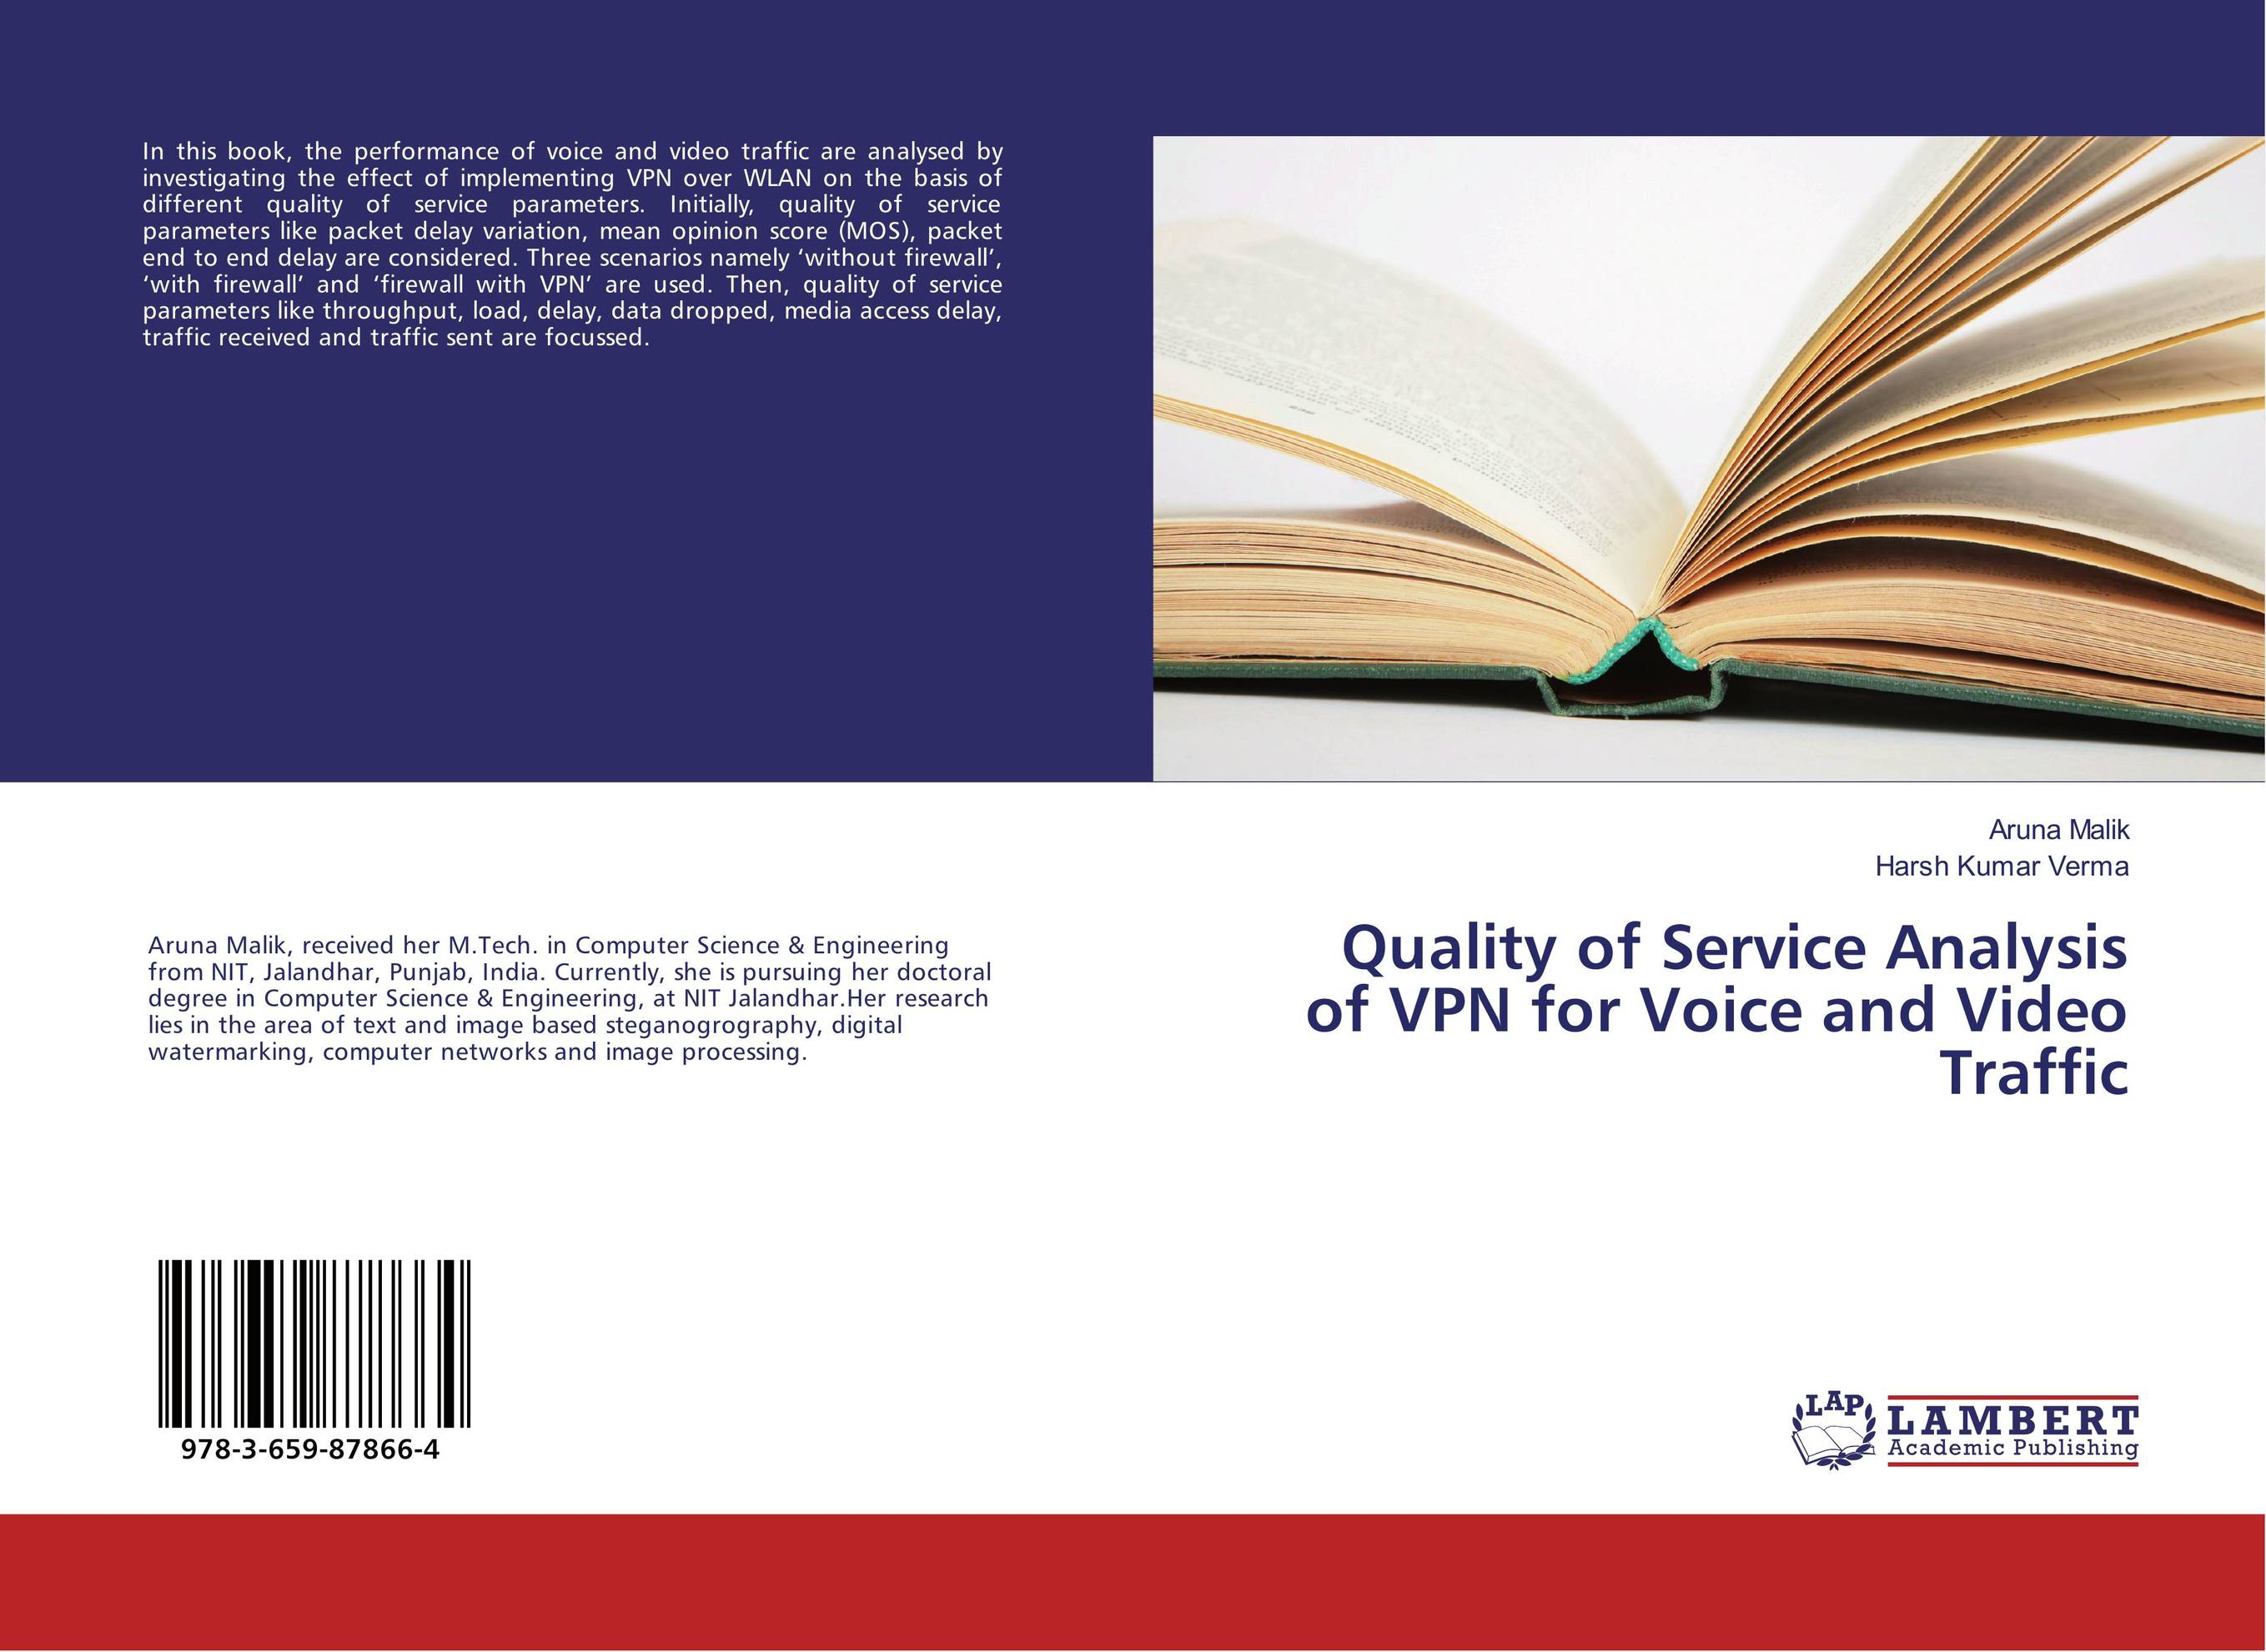 Quality of Service Analysis of VPN for Voice and Video Traffic